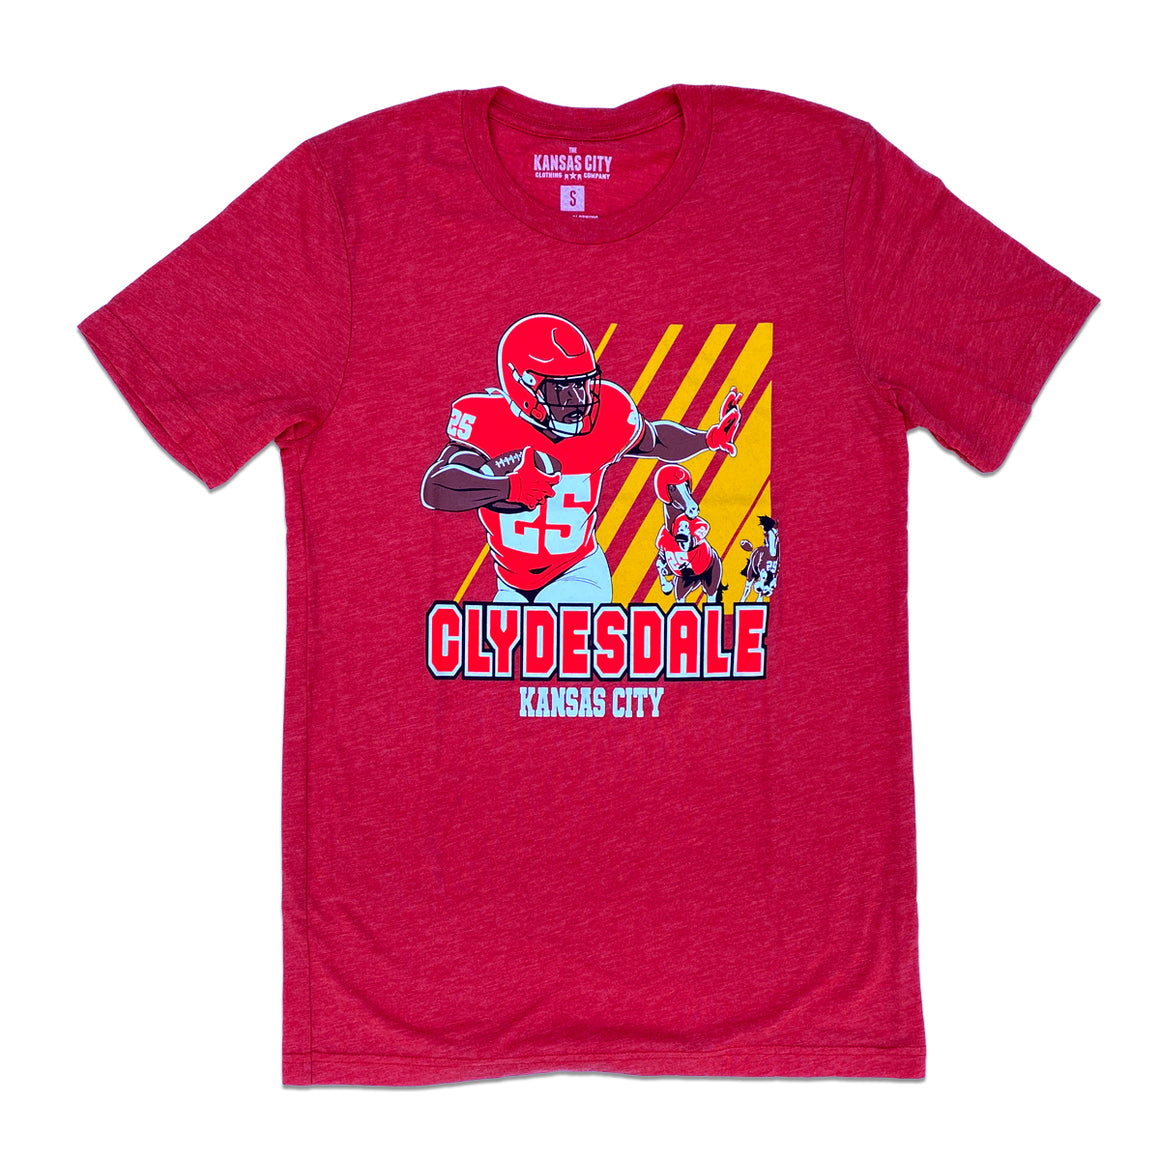 KC CLOTHING | KC CLYDESDALE T-SHIRT - RED